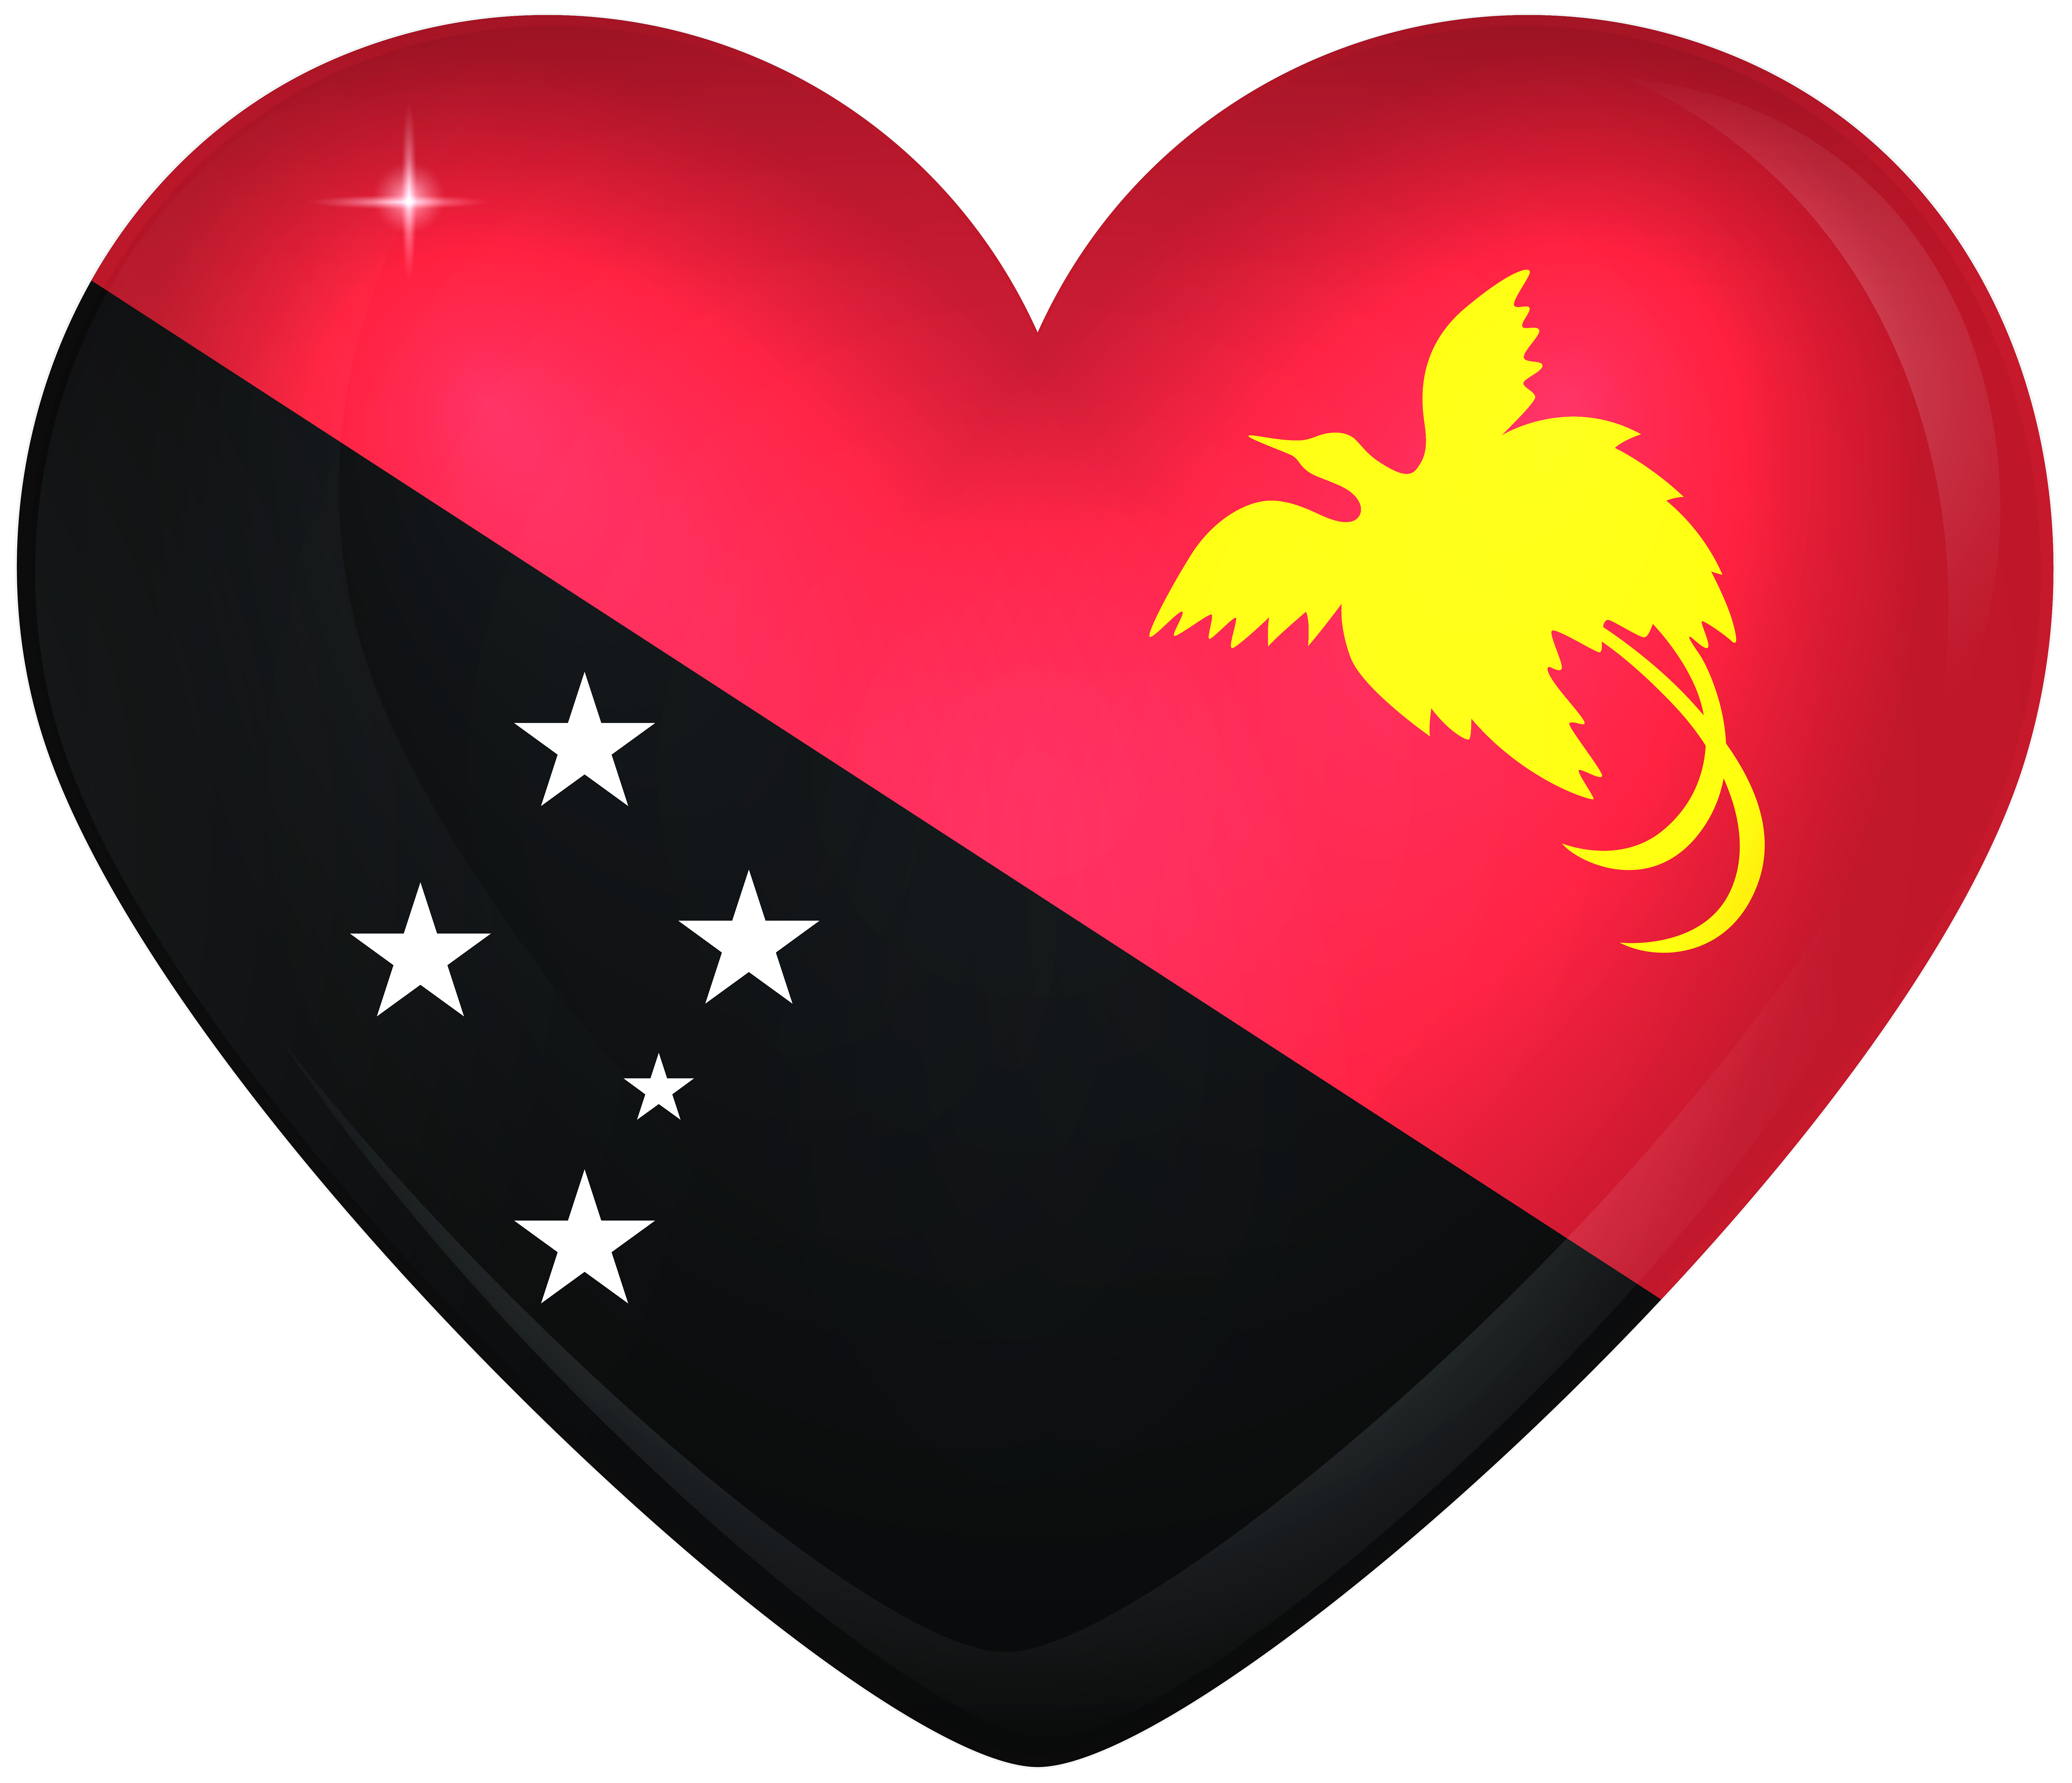 Png papua new guinea. Large heart flag gallery